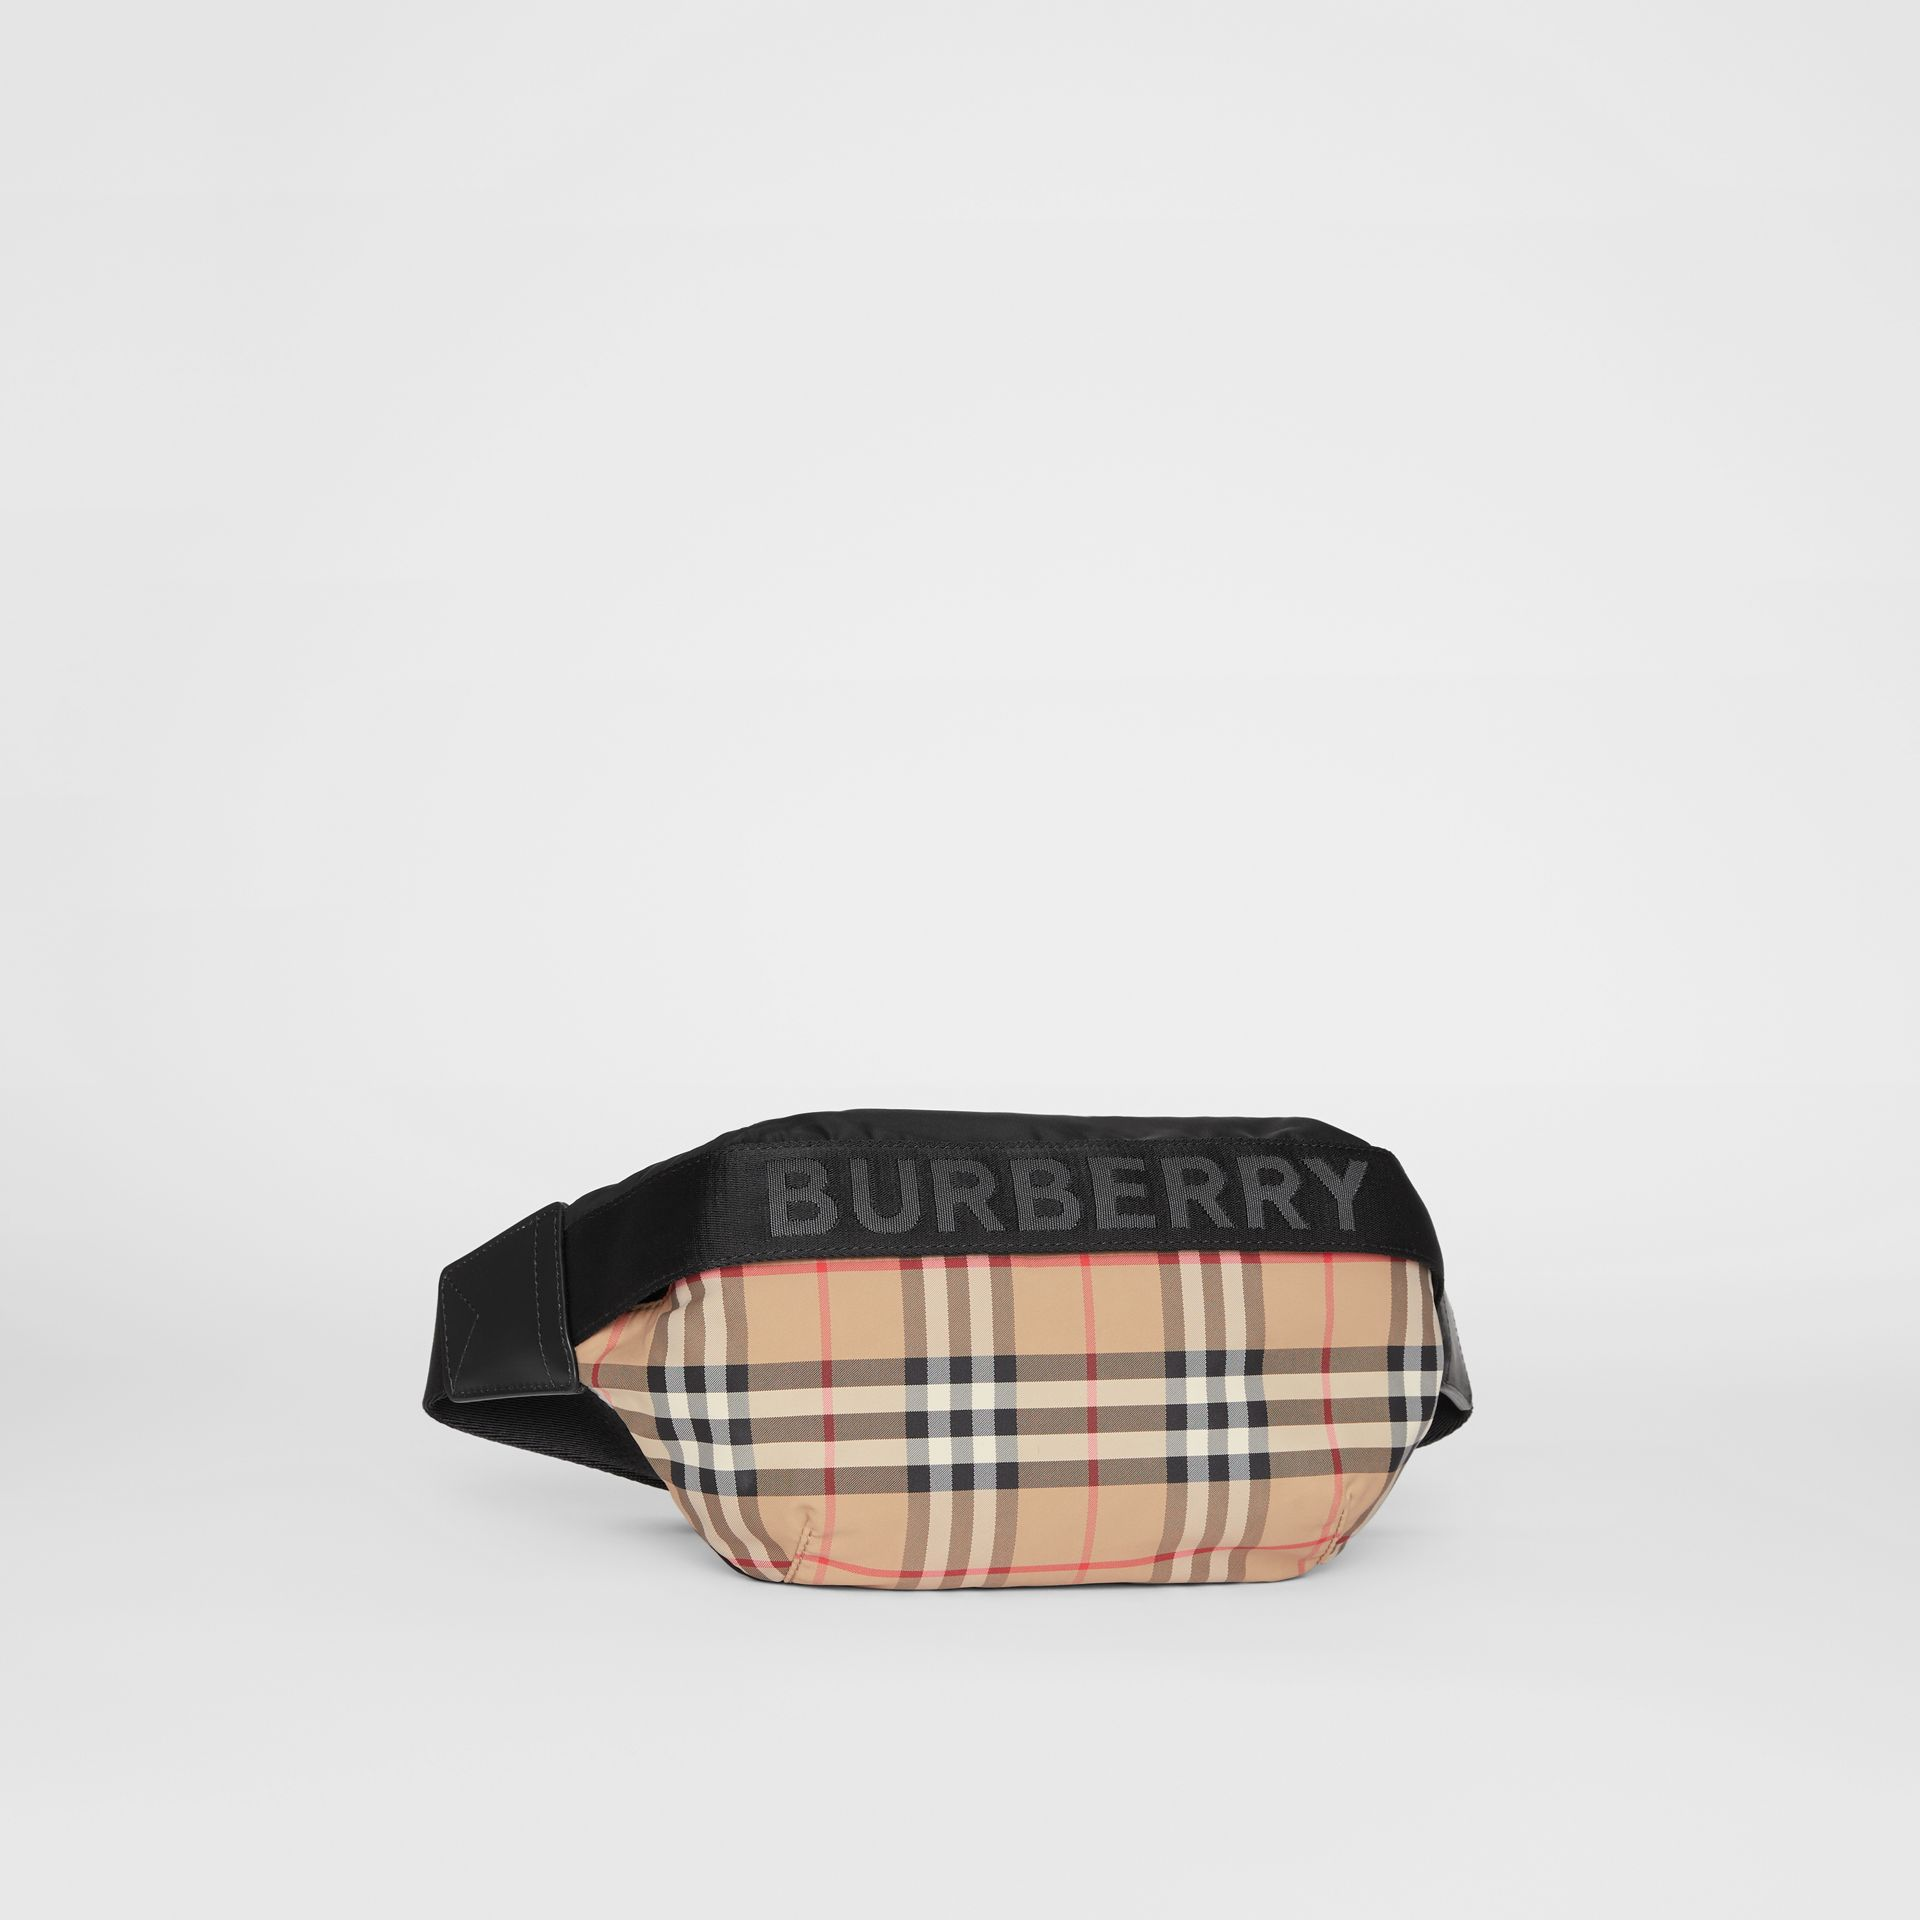 Sac banane moyen Vintage check (Beige D'archive) | Burberry - photo de la galerie 8